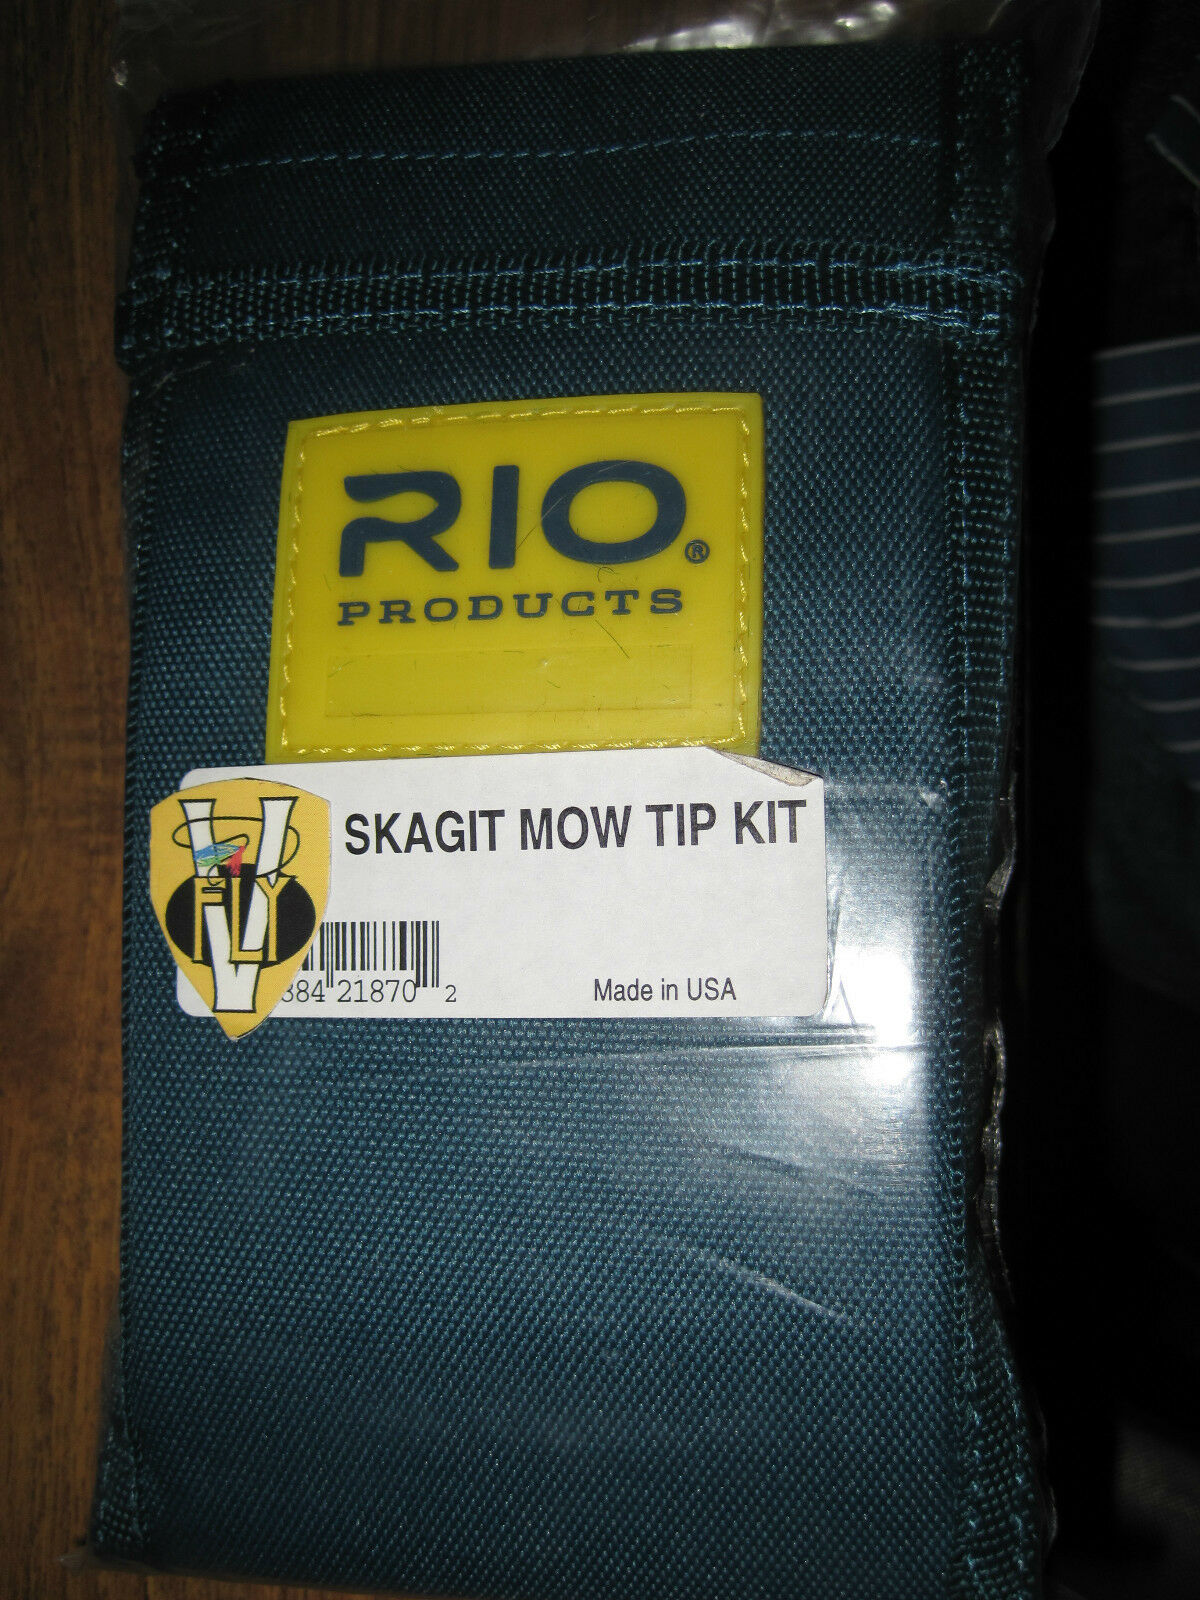 Rio Skagit iMow Tip Kits for Salmon Salmon Salmon Skagit Fly Lines With Wallet 2 Options 28ceba